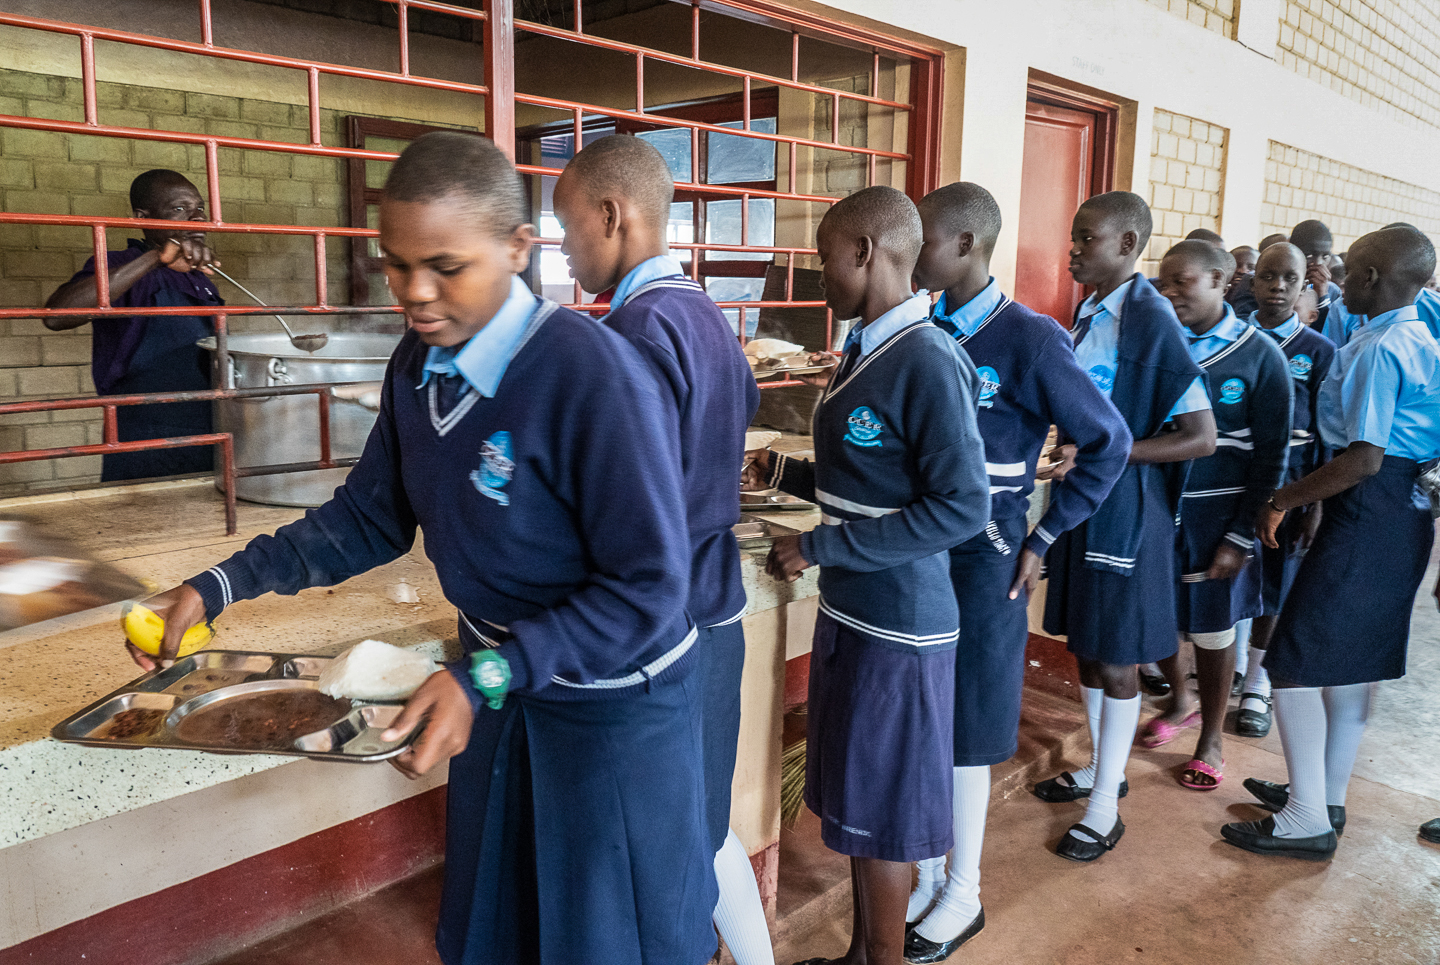 Seven hundred students receive three meals a day.